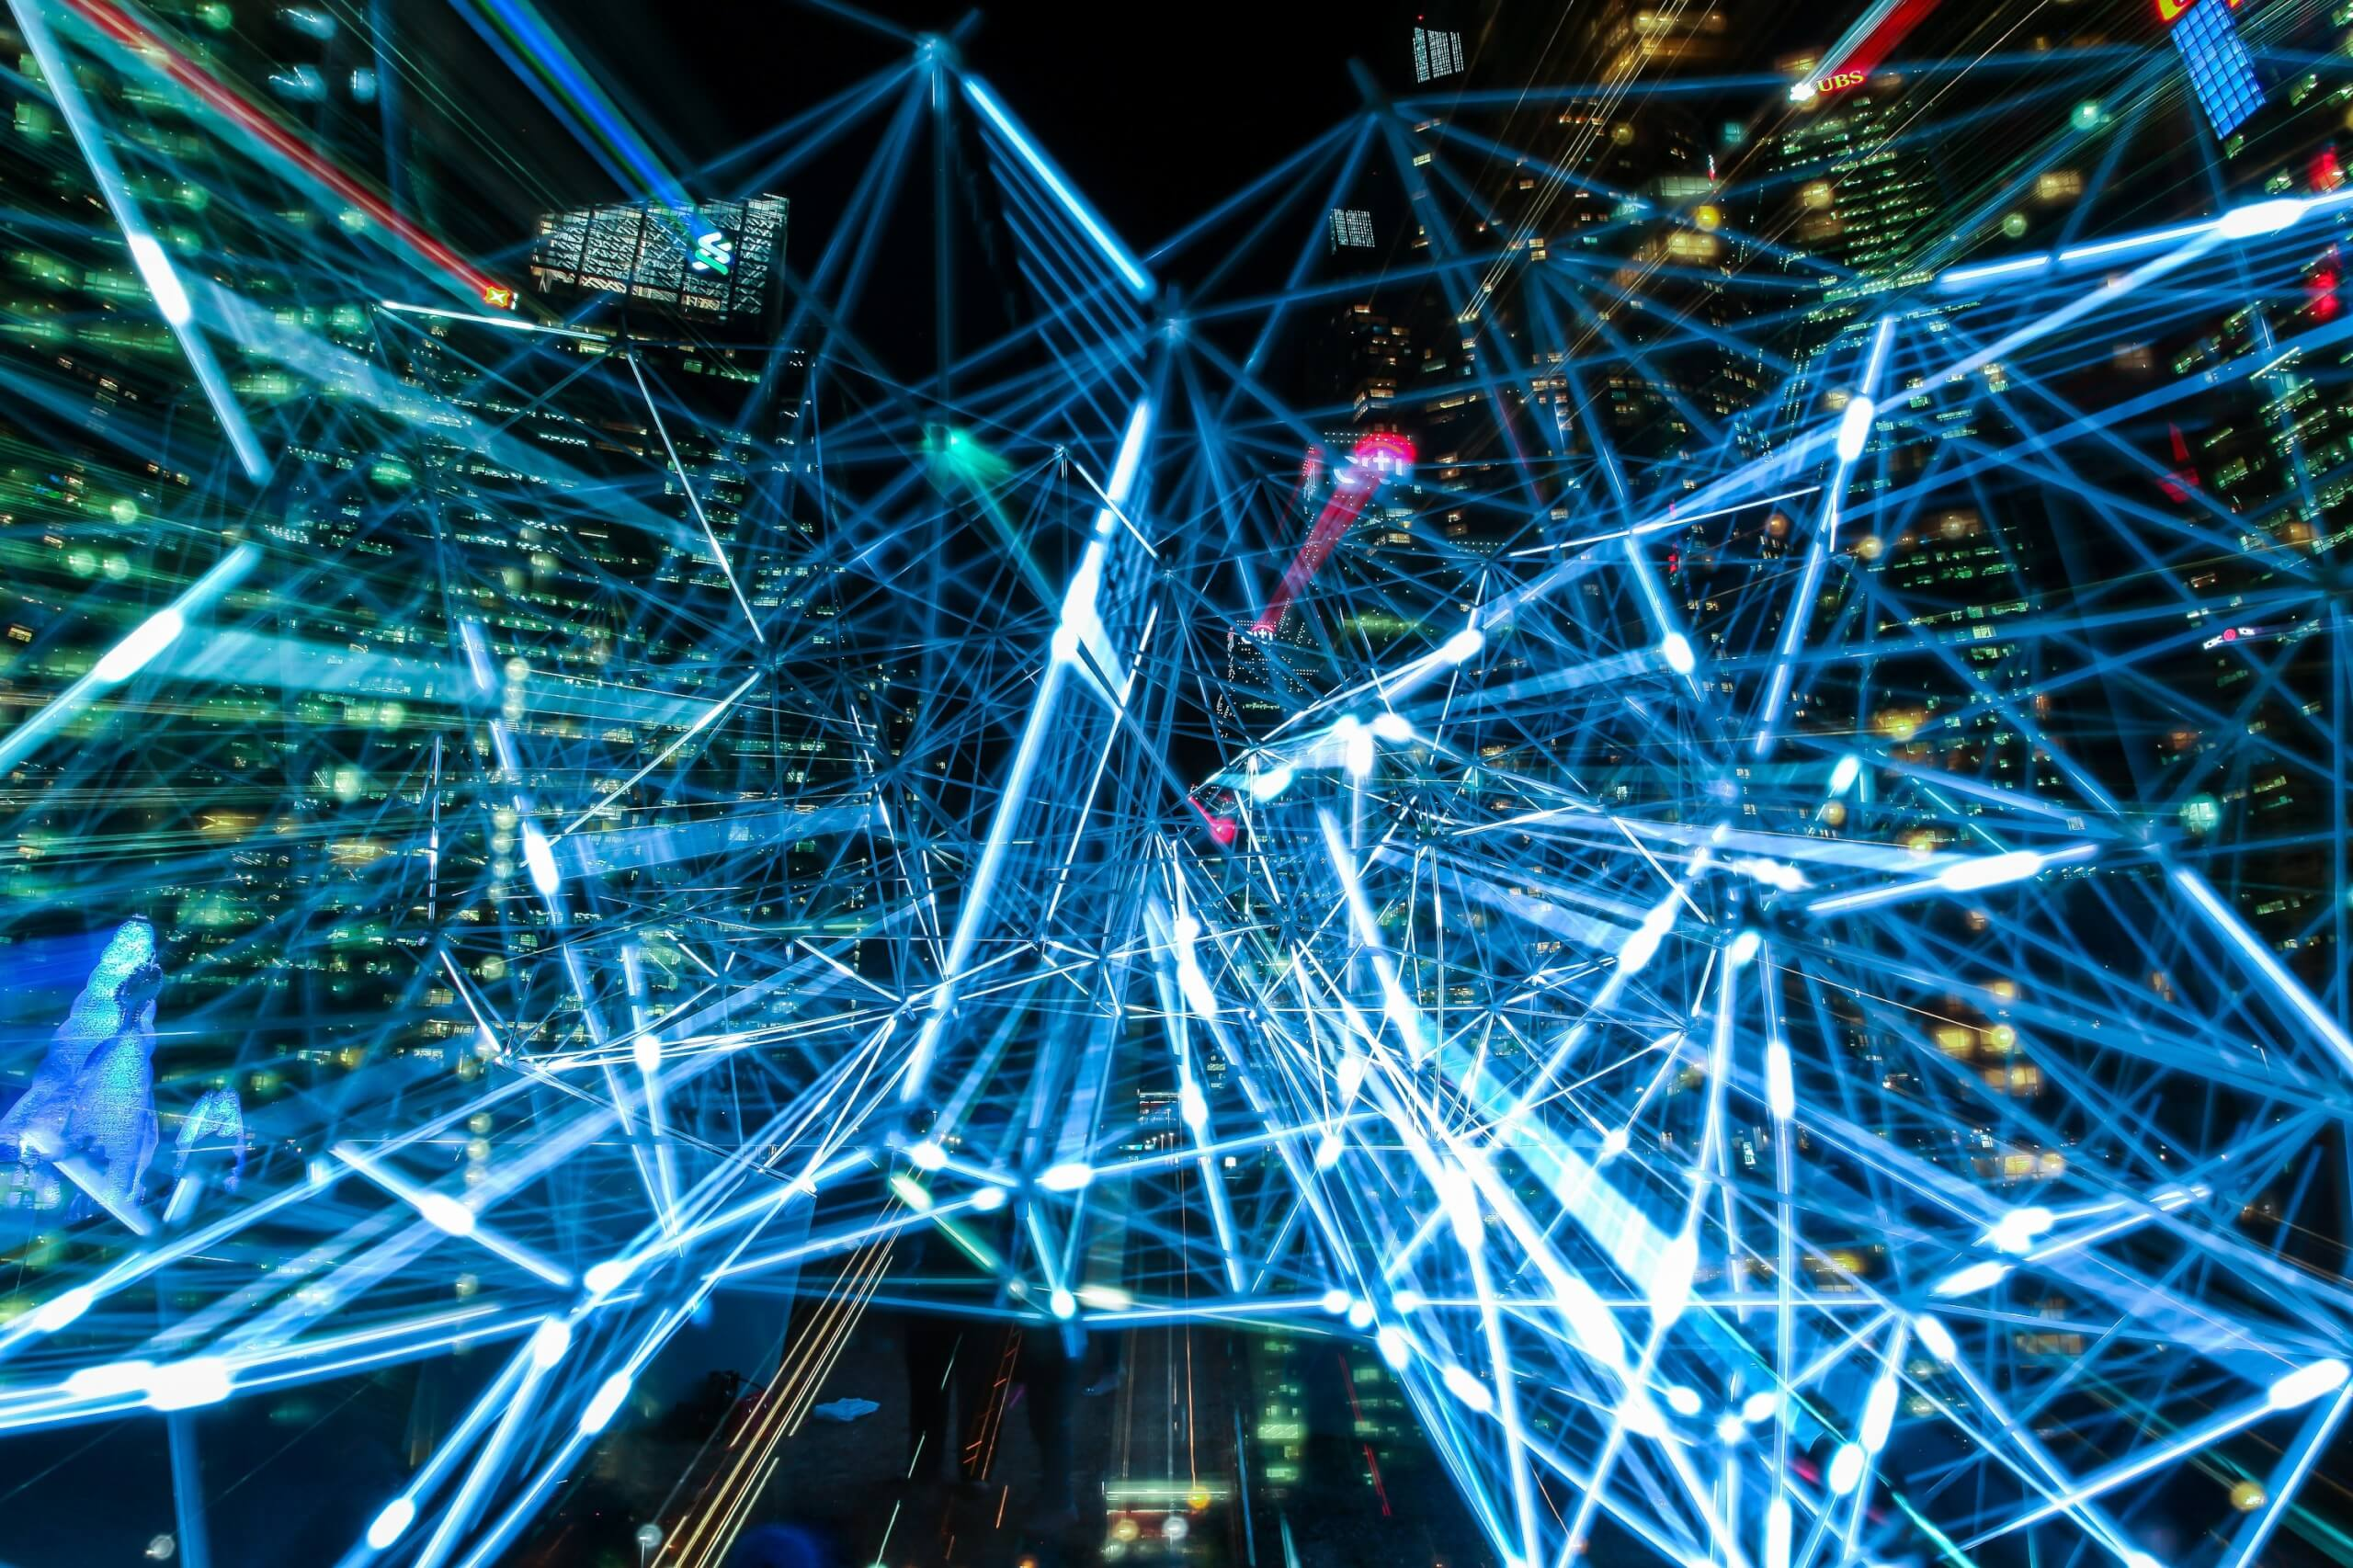 Neural machine translation: A complicated structure in a night time cityscape mimics the way biological neurouns signal one another in the brain